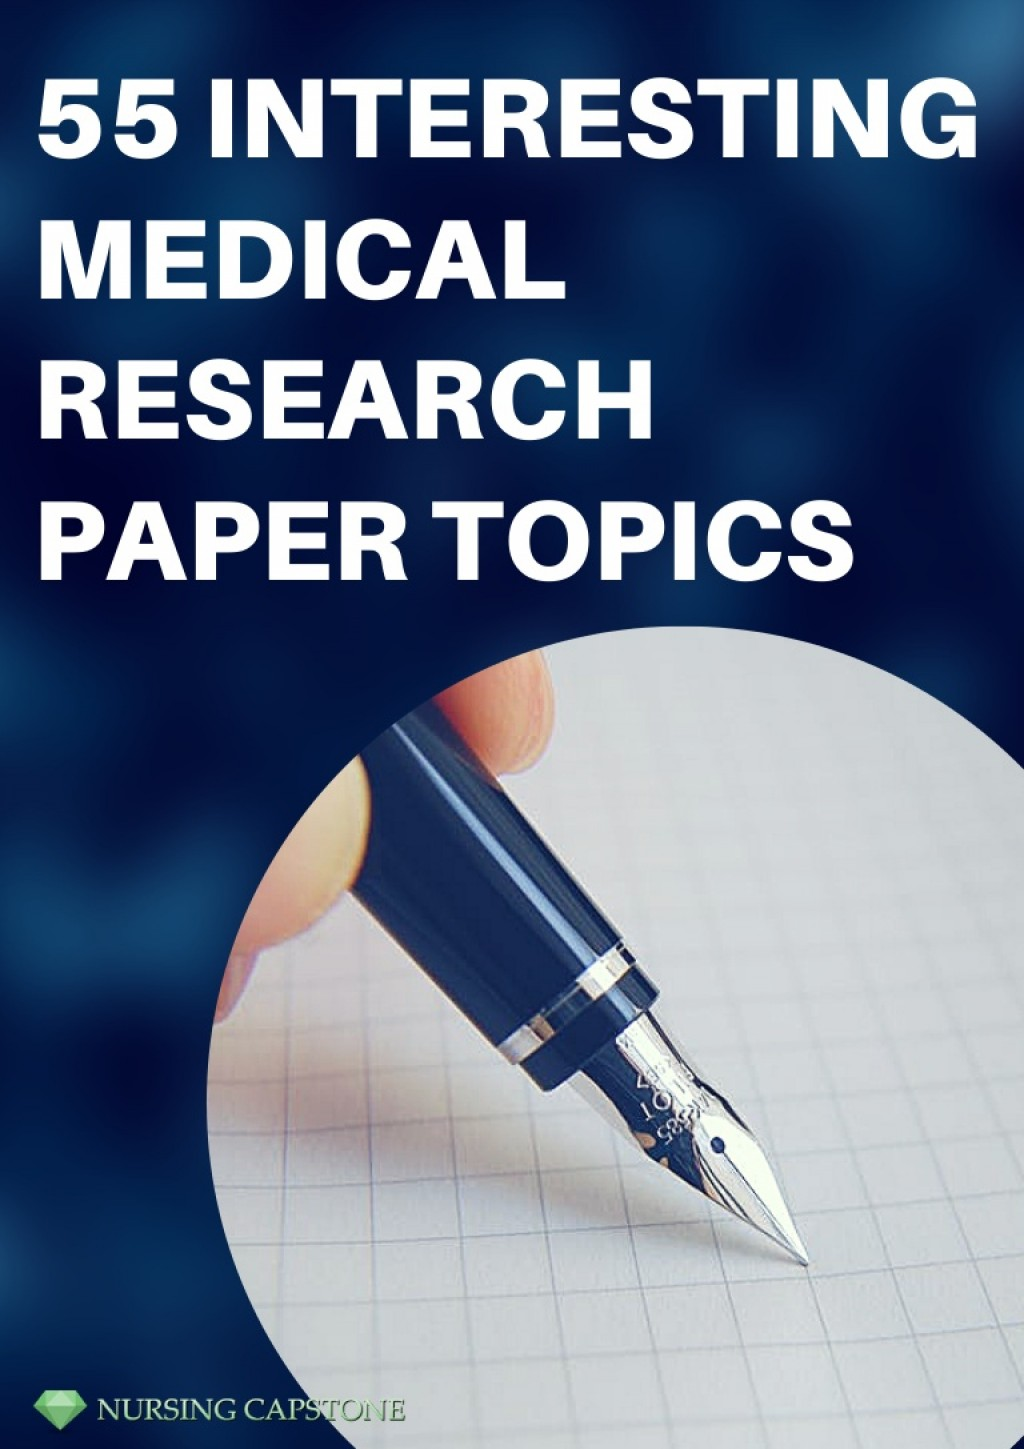 006 Good Medical Research Paper Topics Thumbnail Stupendous Best Ethics For High School Students Large